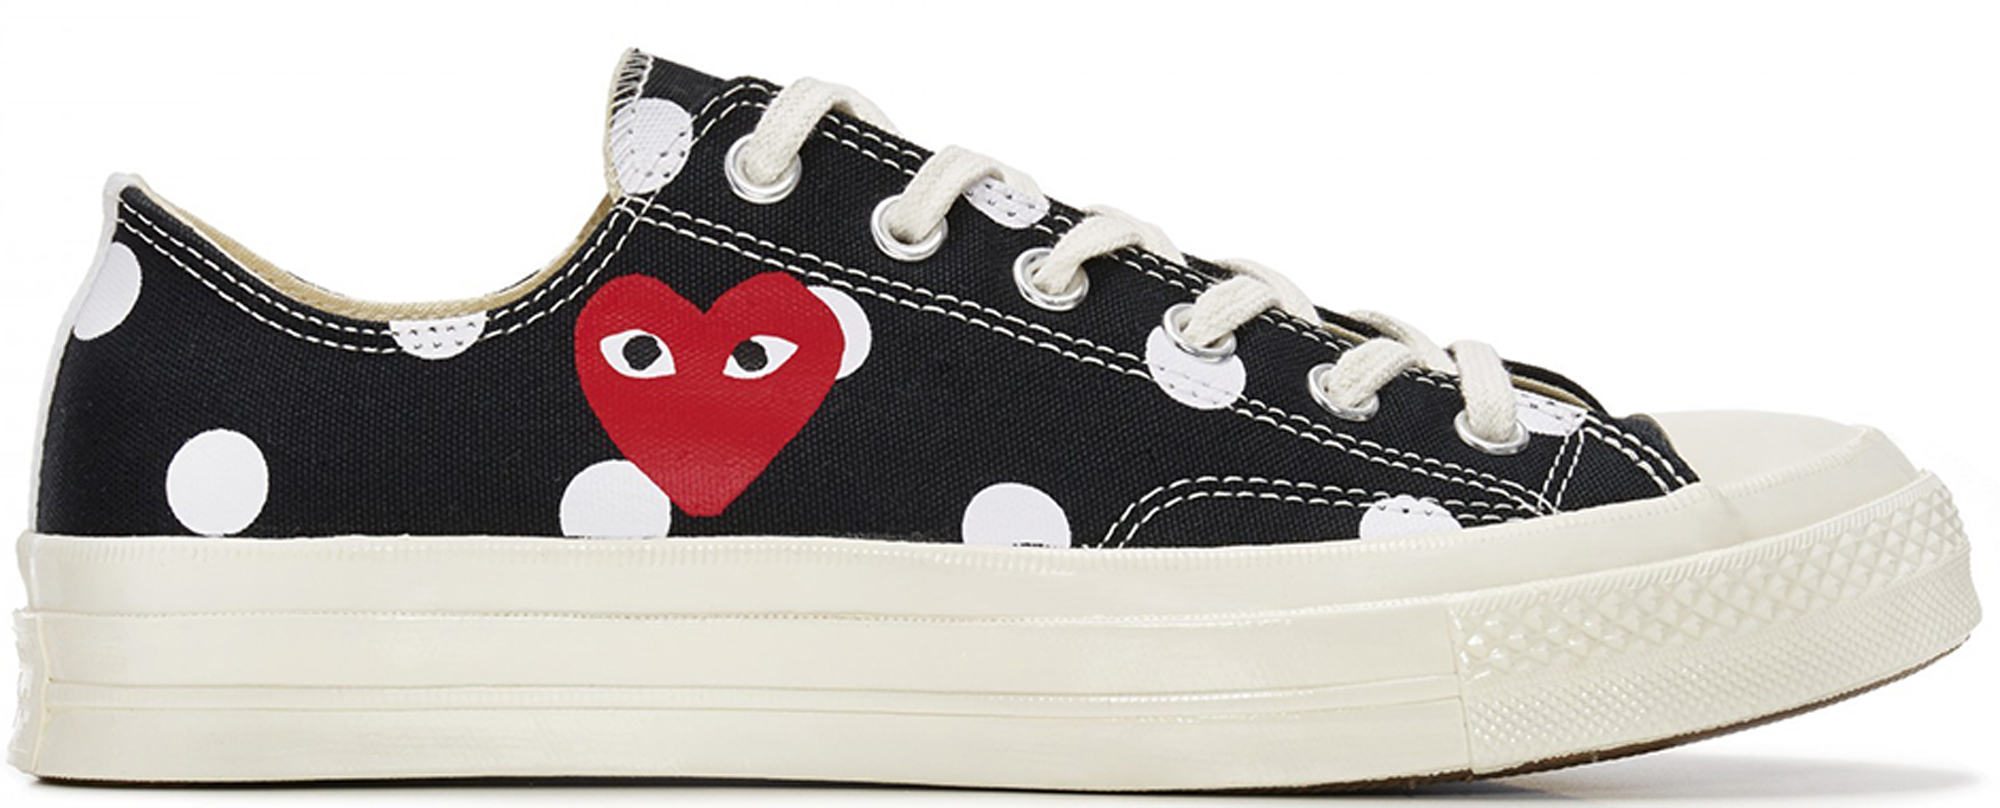 Converse Chuck Taylor All-Star 70s Ox Comme des Garcons Polka Dot Black